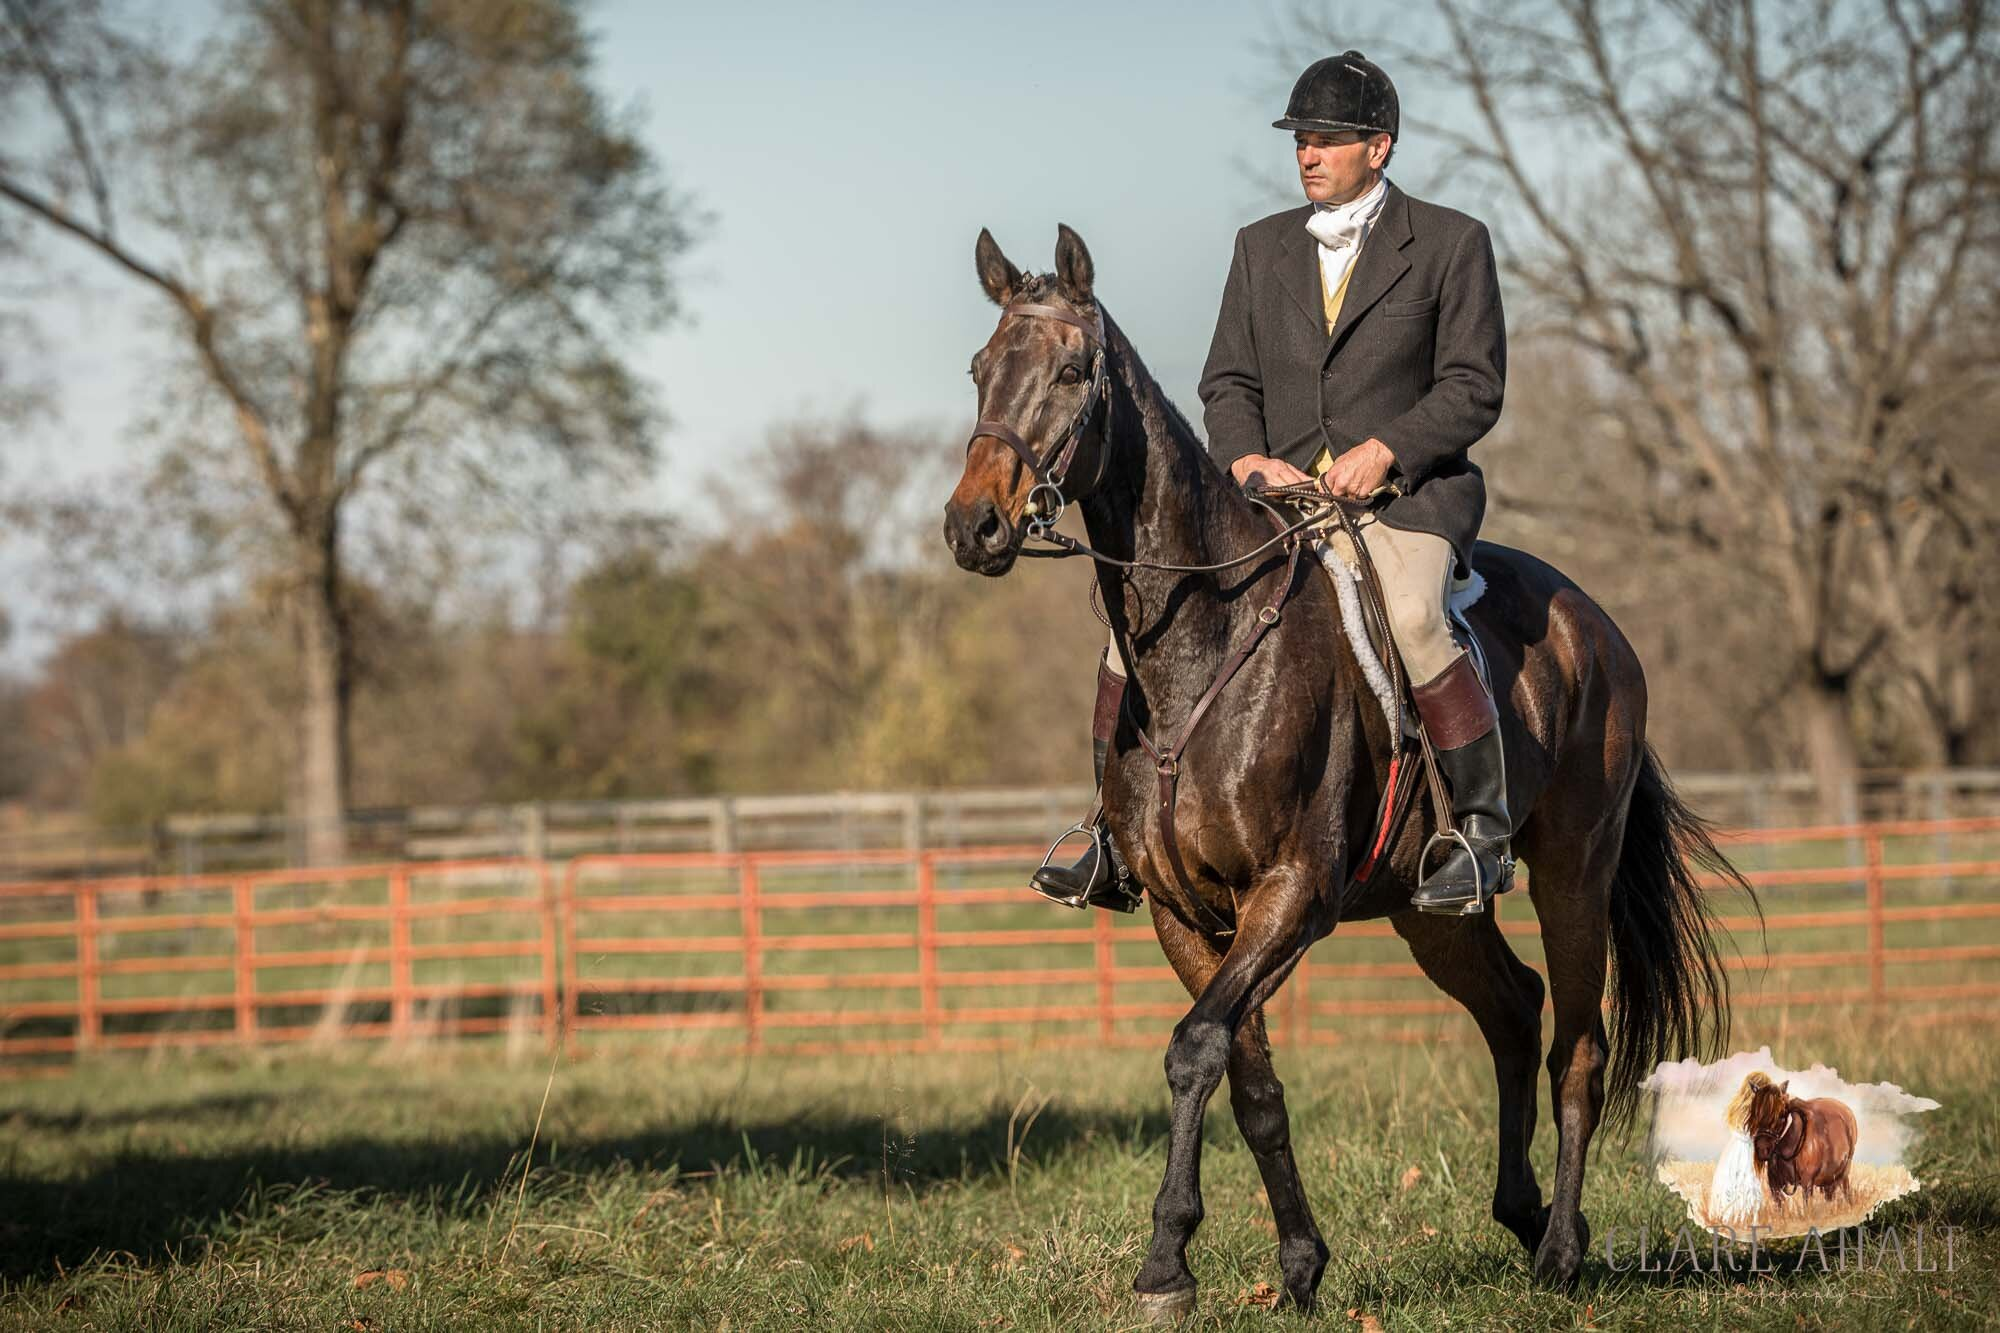 equine_photographer_potomac_md_equine_photographer_middleburg_VA_equine_portraiture_loudon_county_VA-1302.jpg